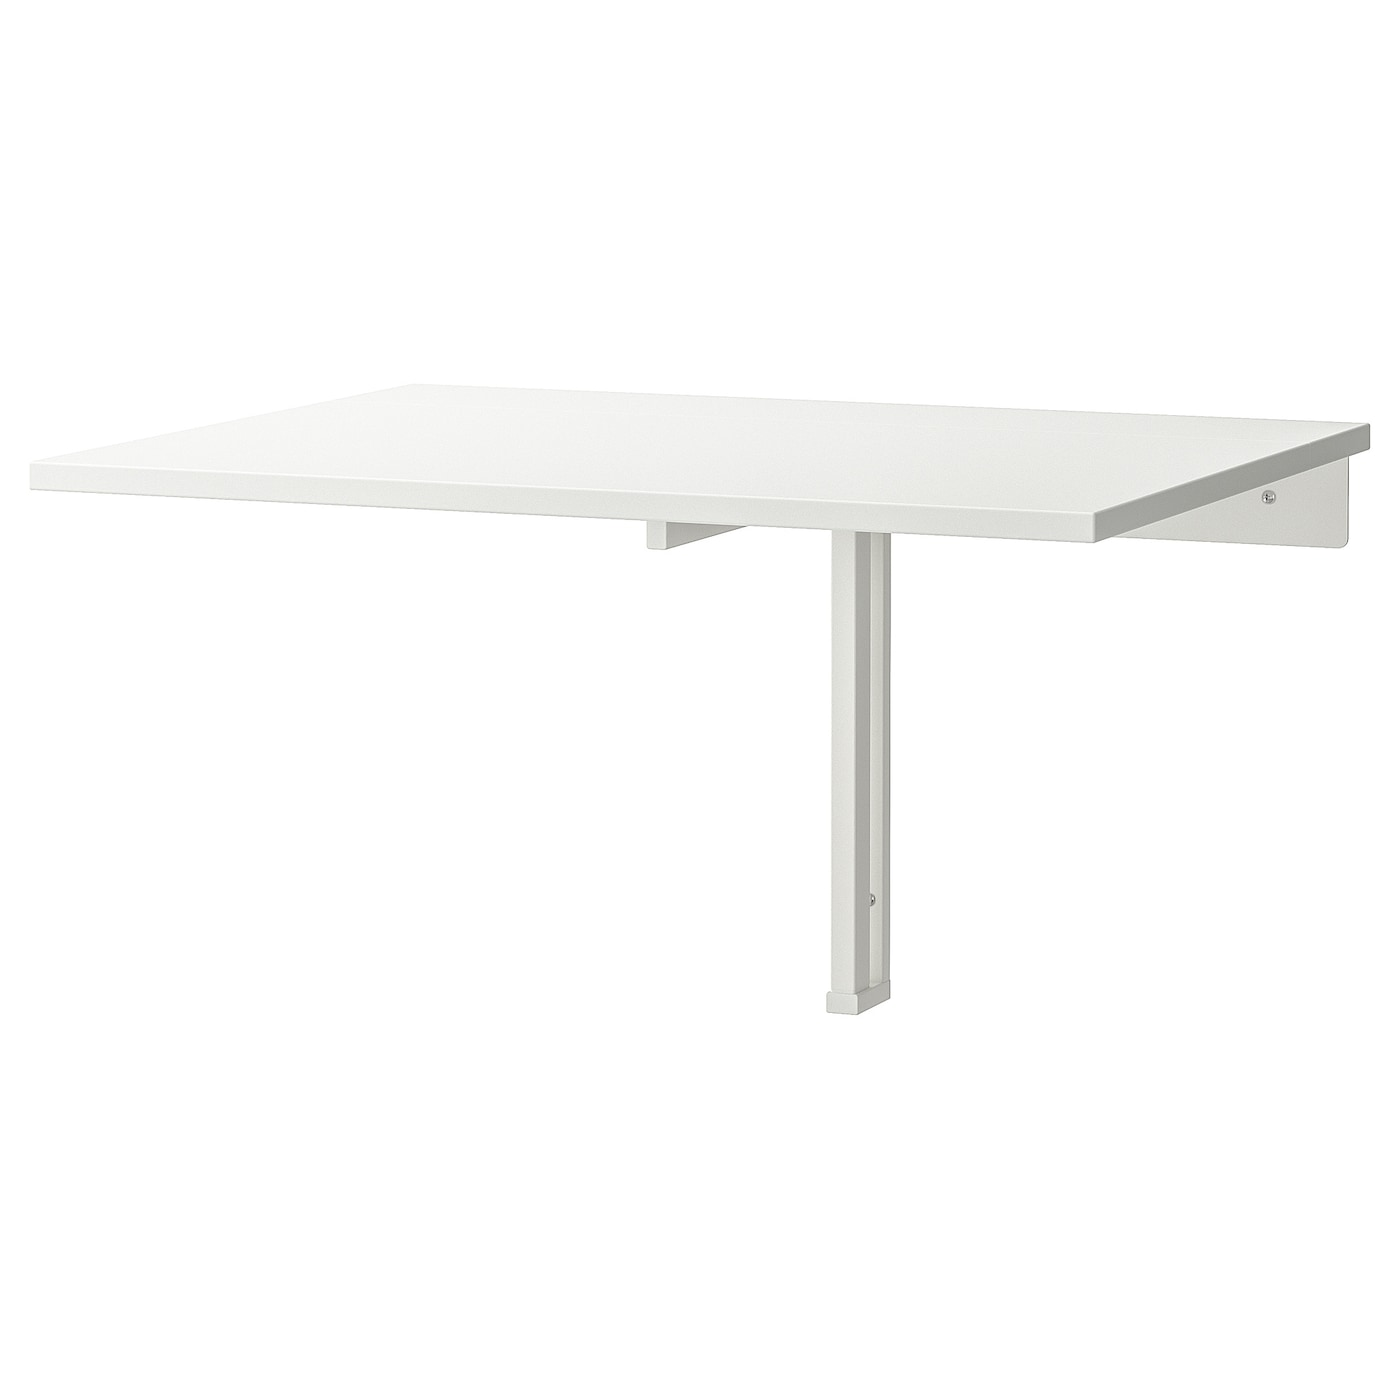 NORBERG Wall-mounted drop-leaf table - white 4x4 cm